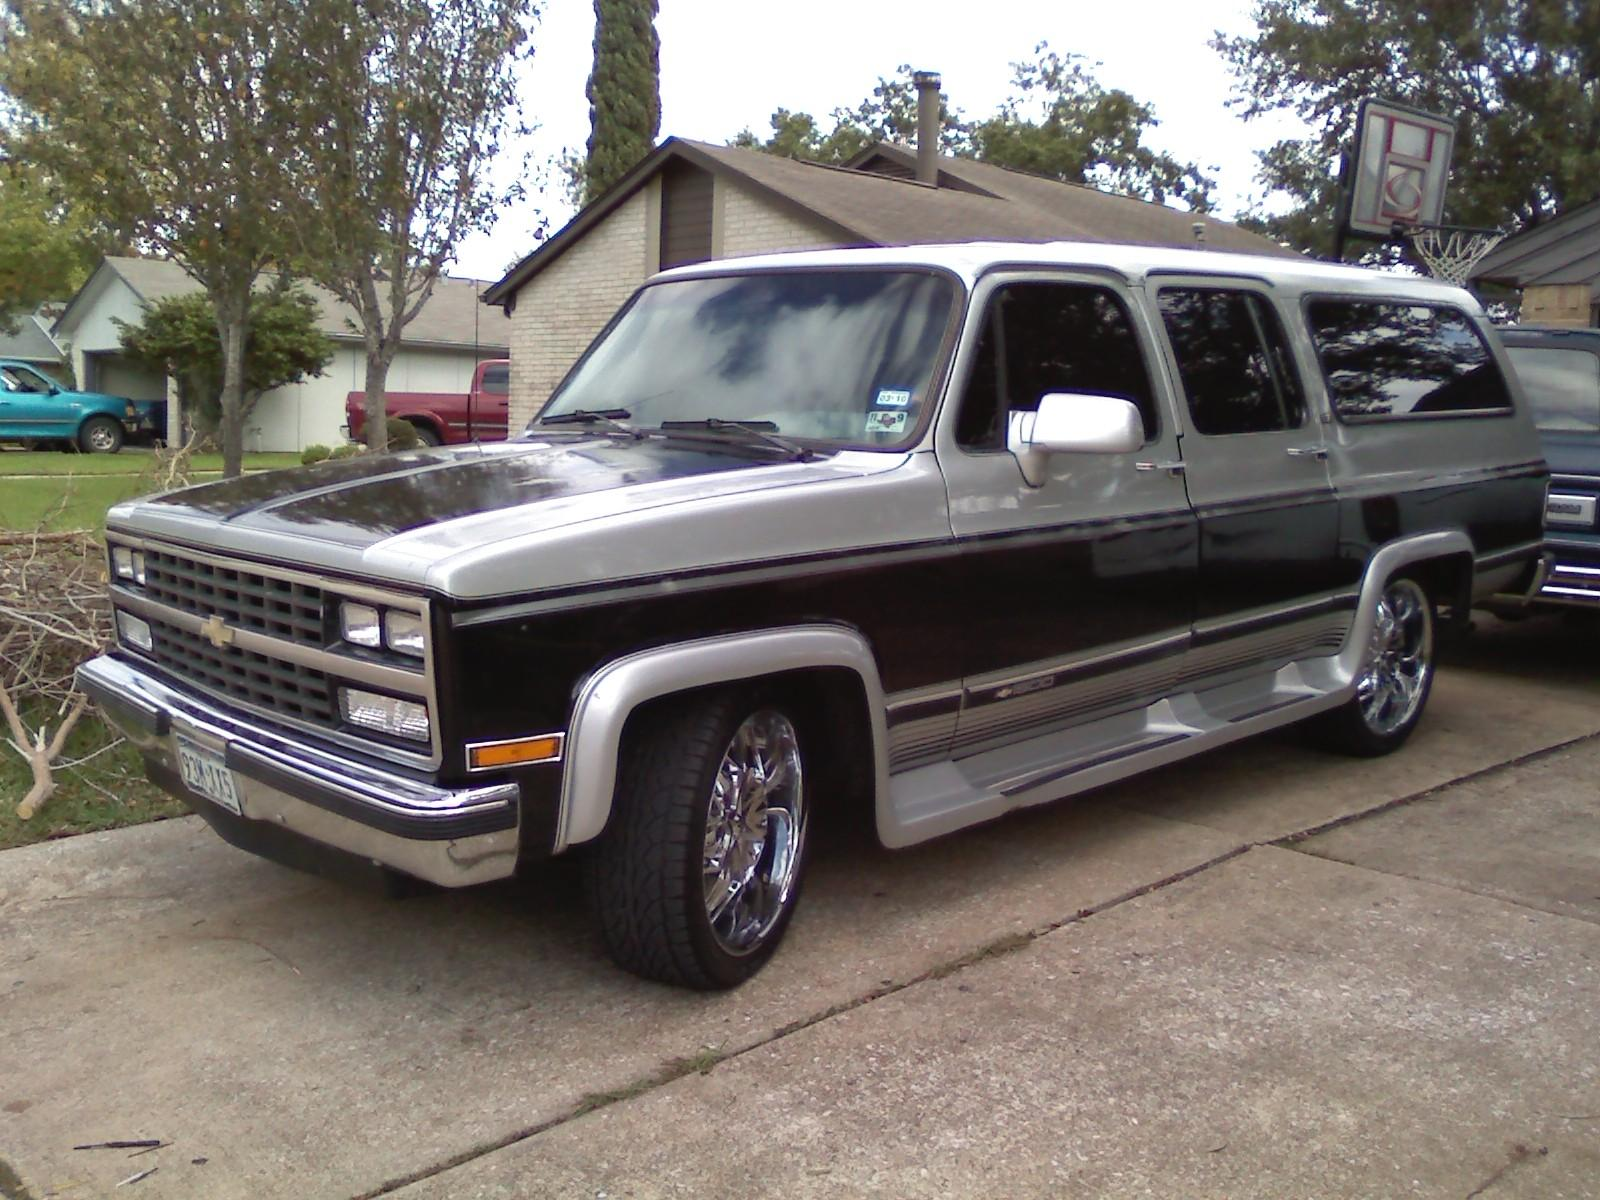 Land Rover Pasadena >> iibeni 1990 Chevrolet Suburban 1500 Specs, Photos, Modification Info at CarDomain